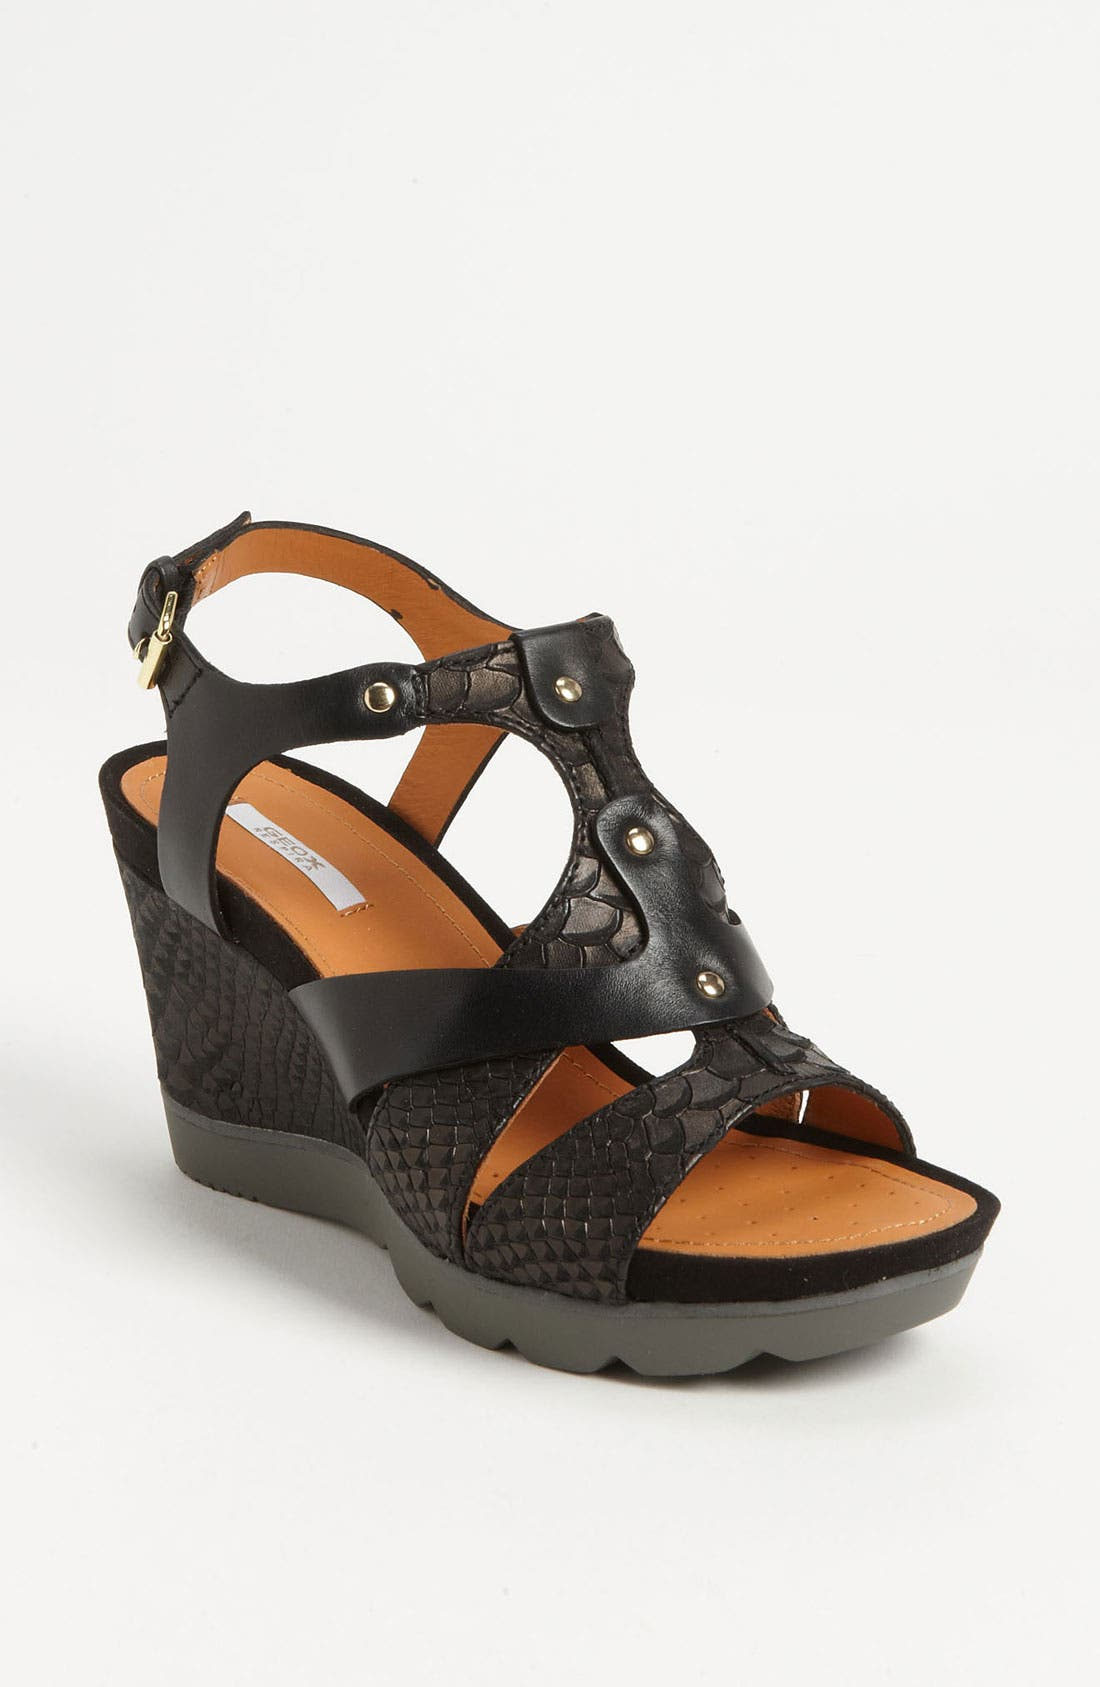 Alternate Image 1 Selected - Geox 'Sophie' Sandal (Online Only)